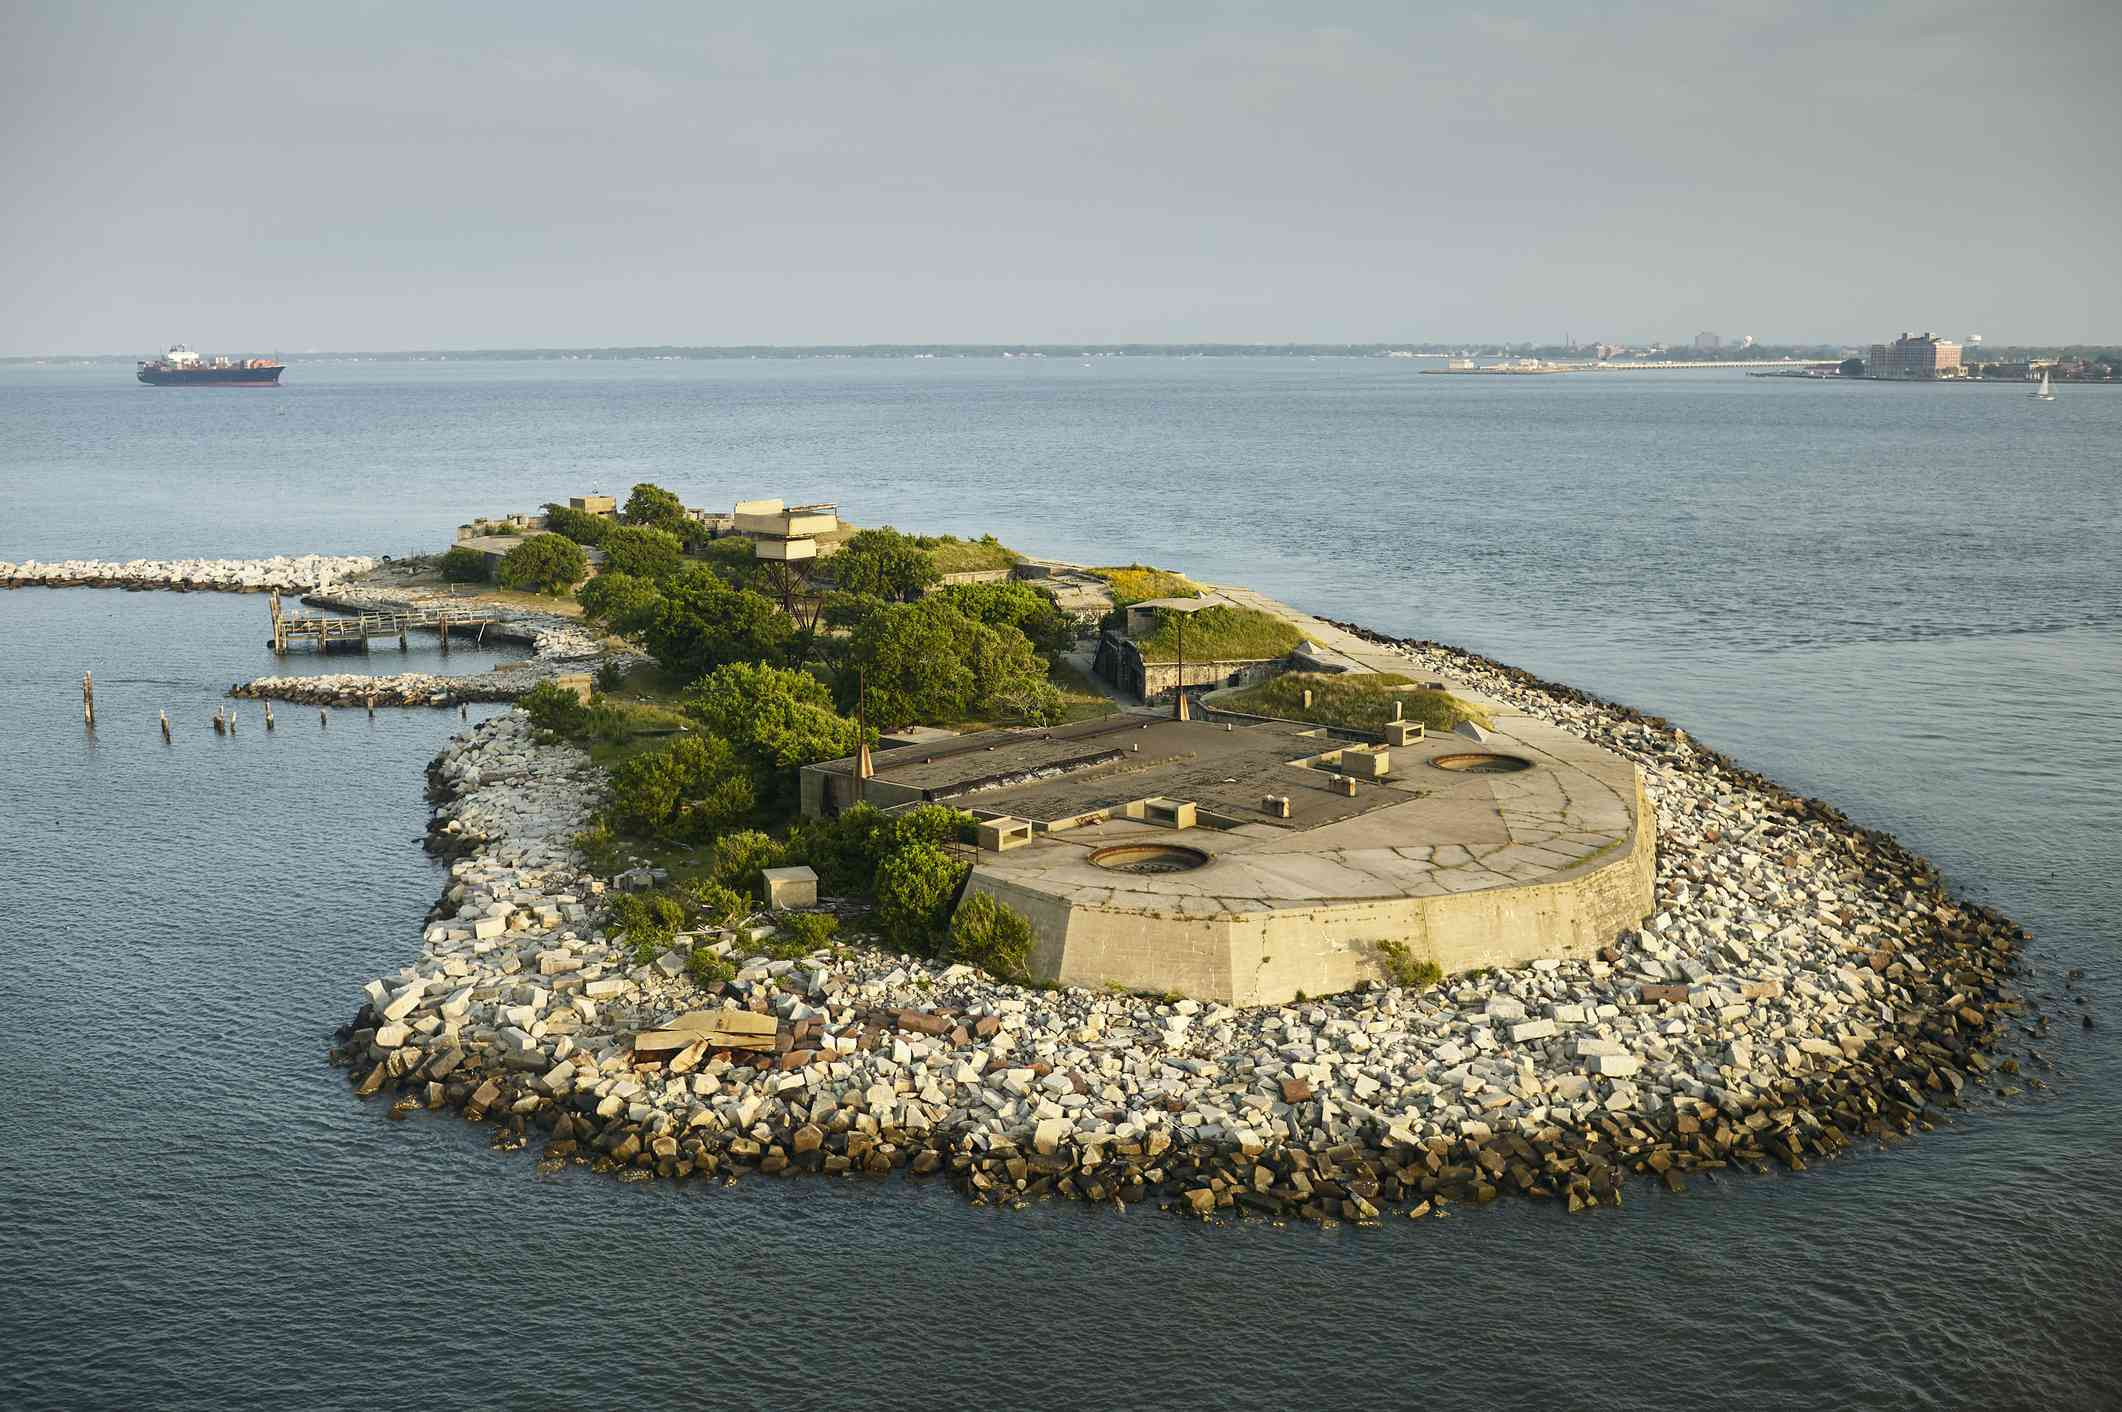 Aerial view of fort on a rocky Chesapeake Bay island